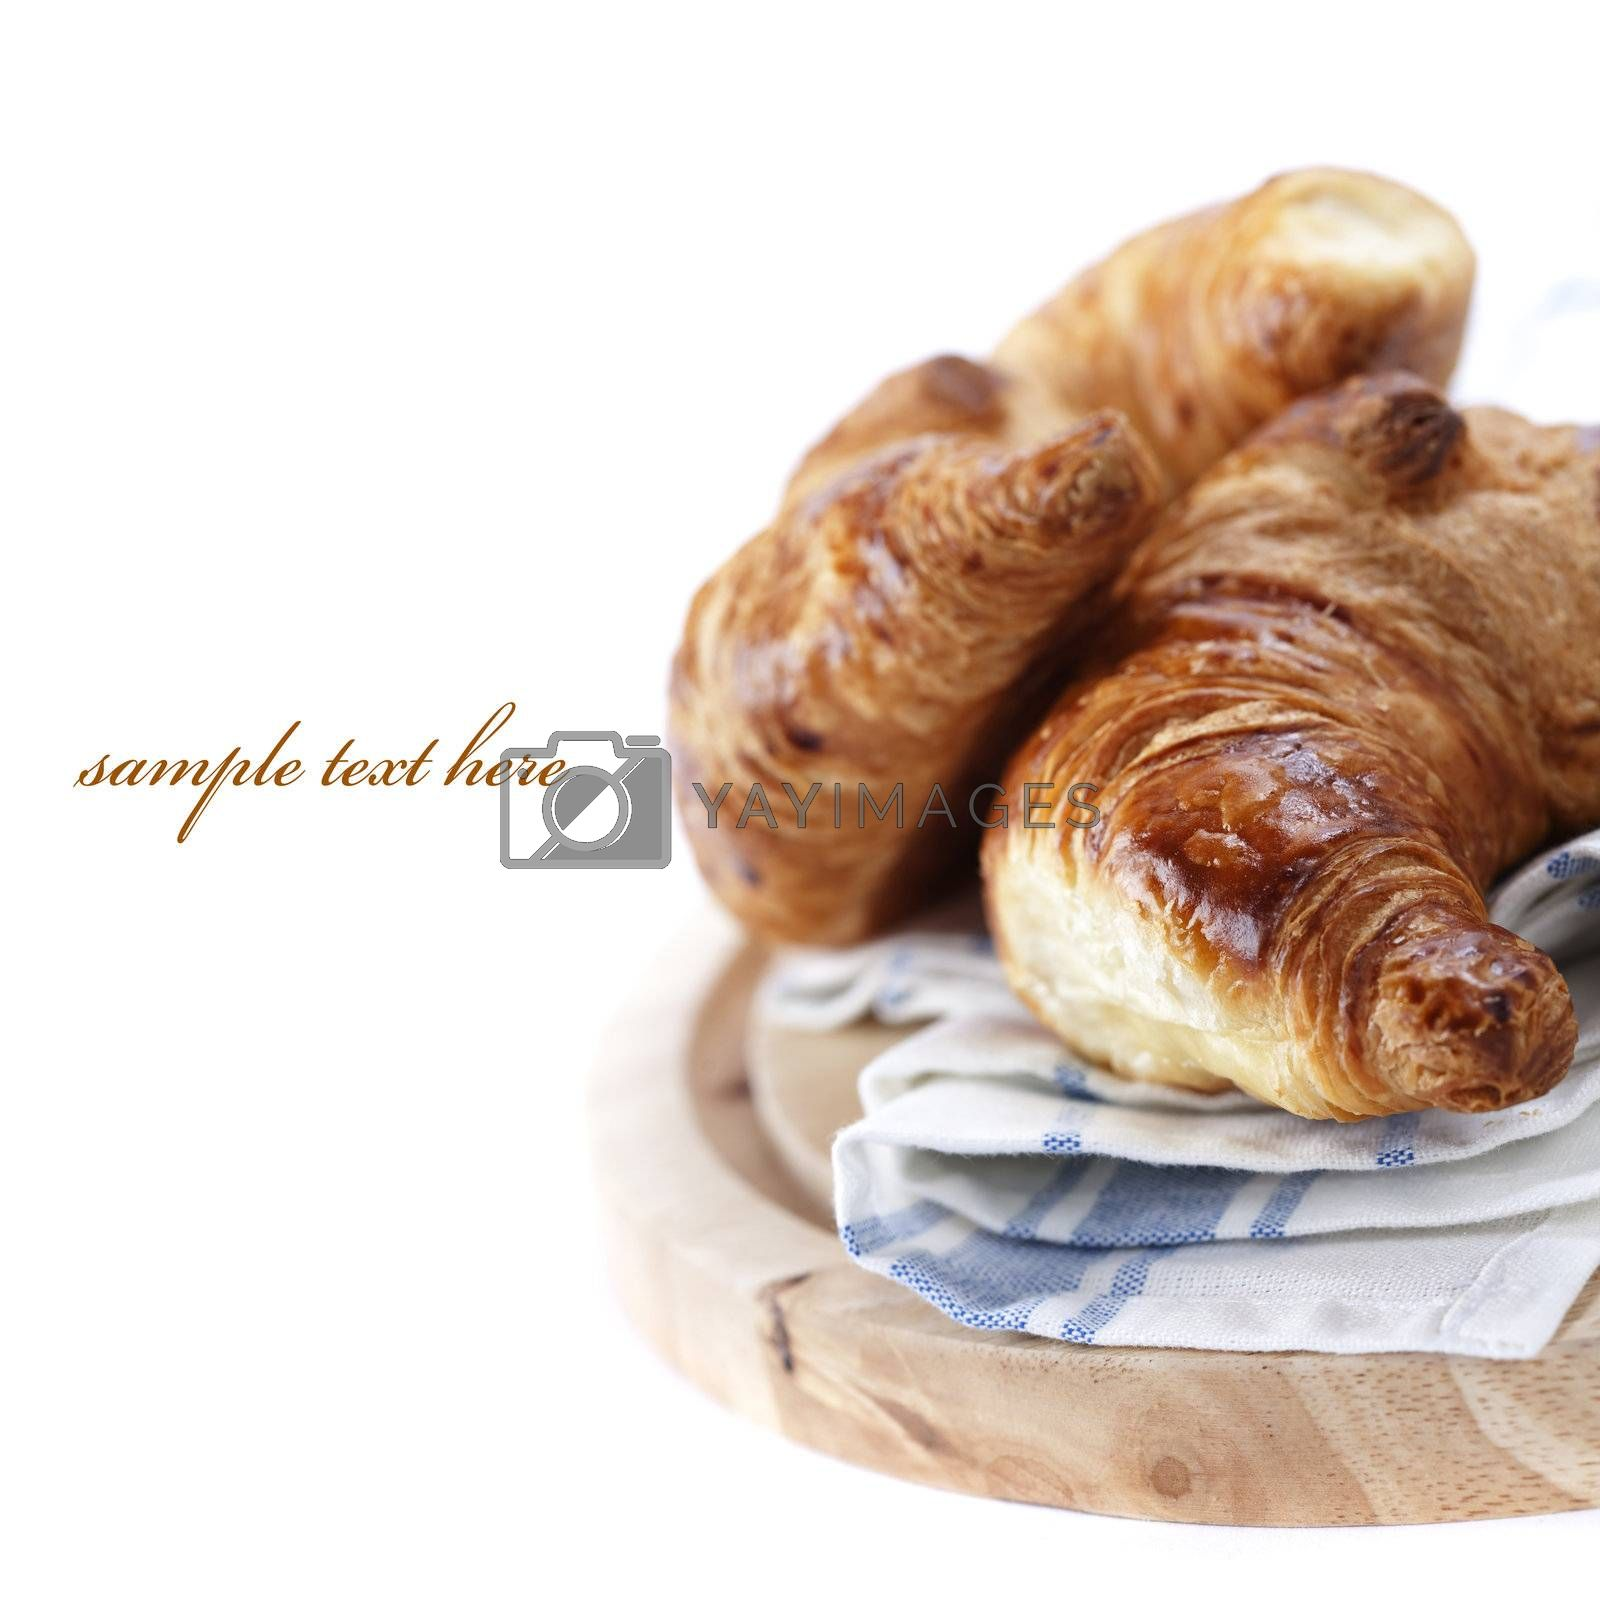 fresh croissants over white (easy removable text)